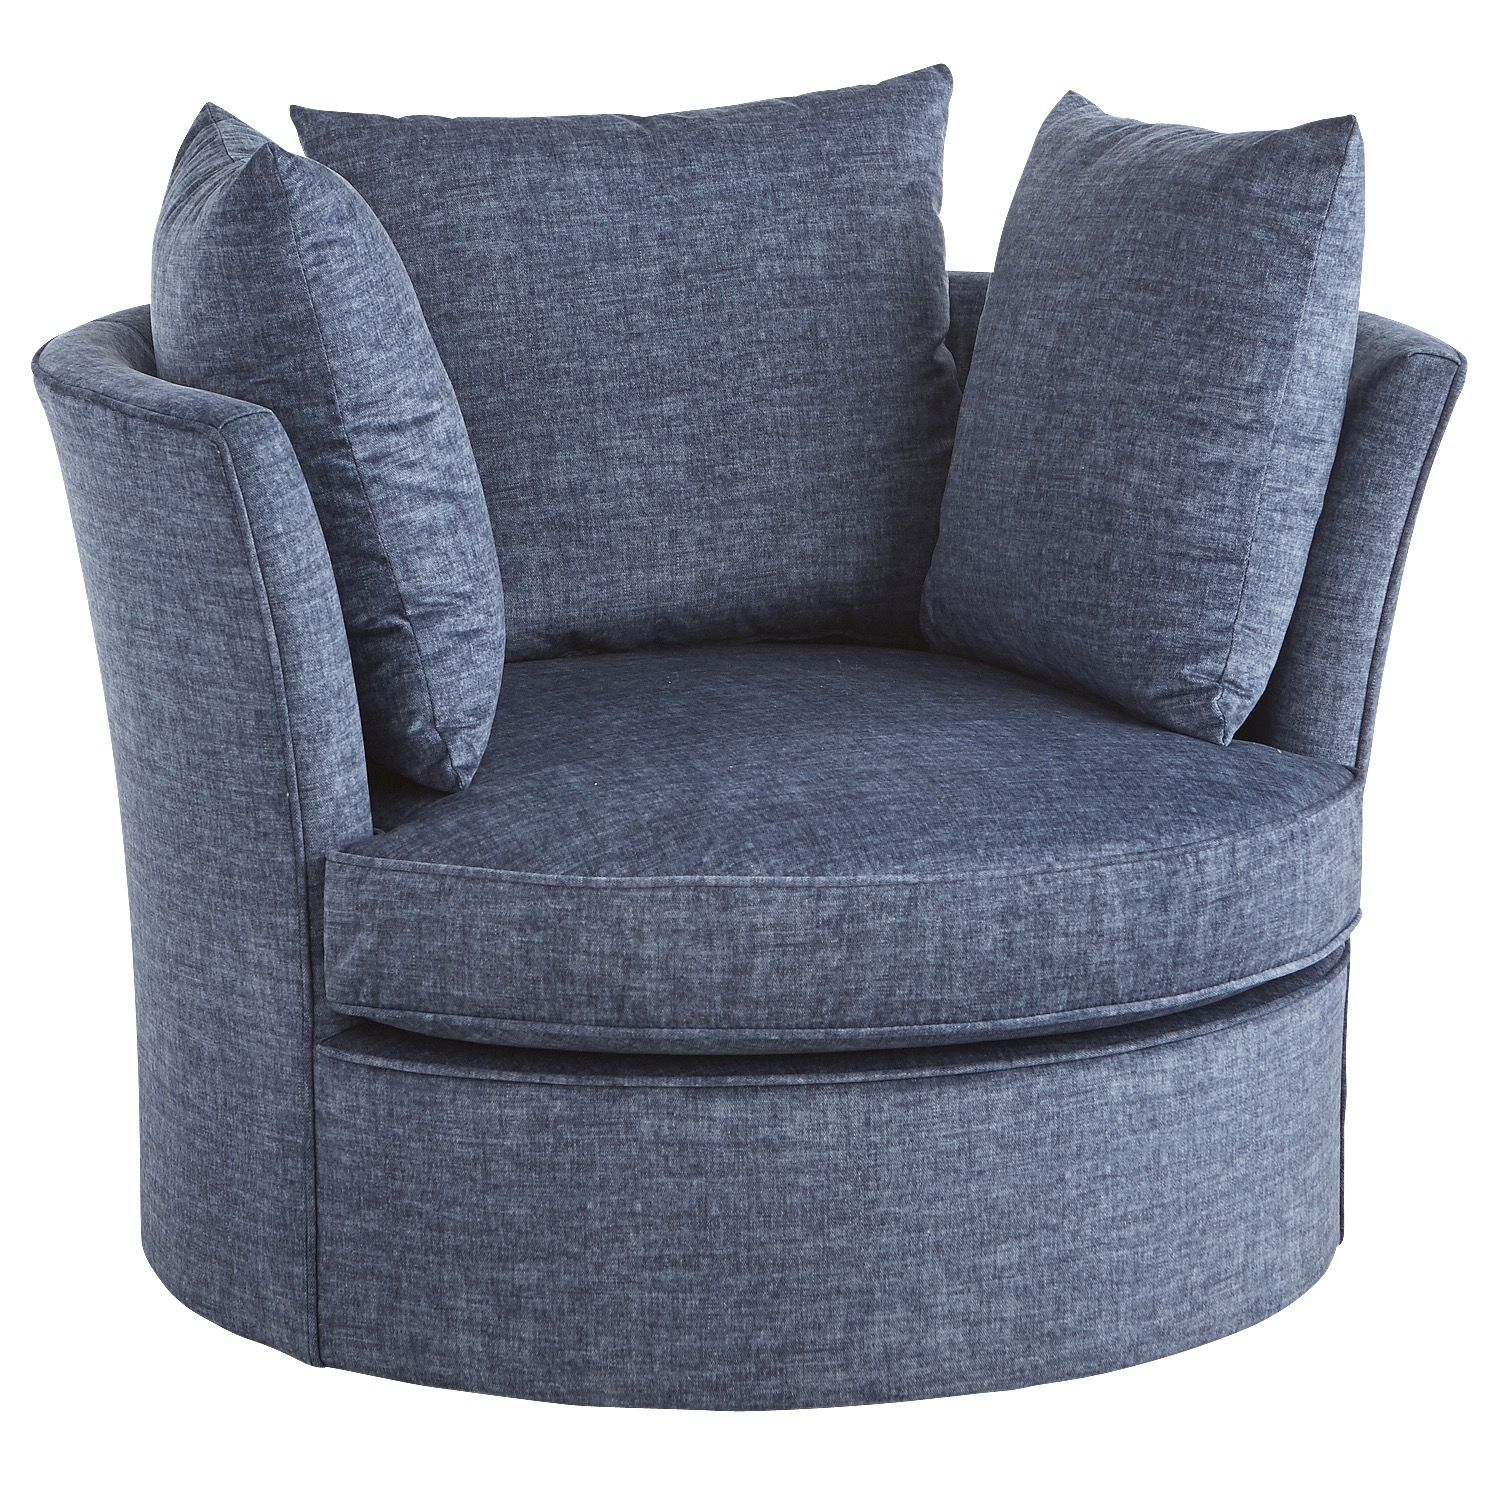 Ike Navy Blue Oversized Swivel Chair | Products | Pinterest | Chair For Devon Ii Swivel Accent Chairs (View 10 of 25)